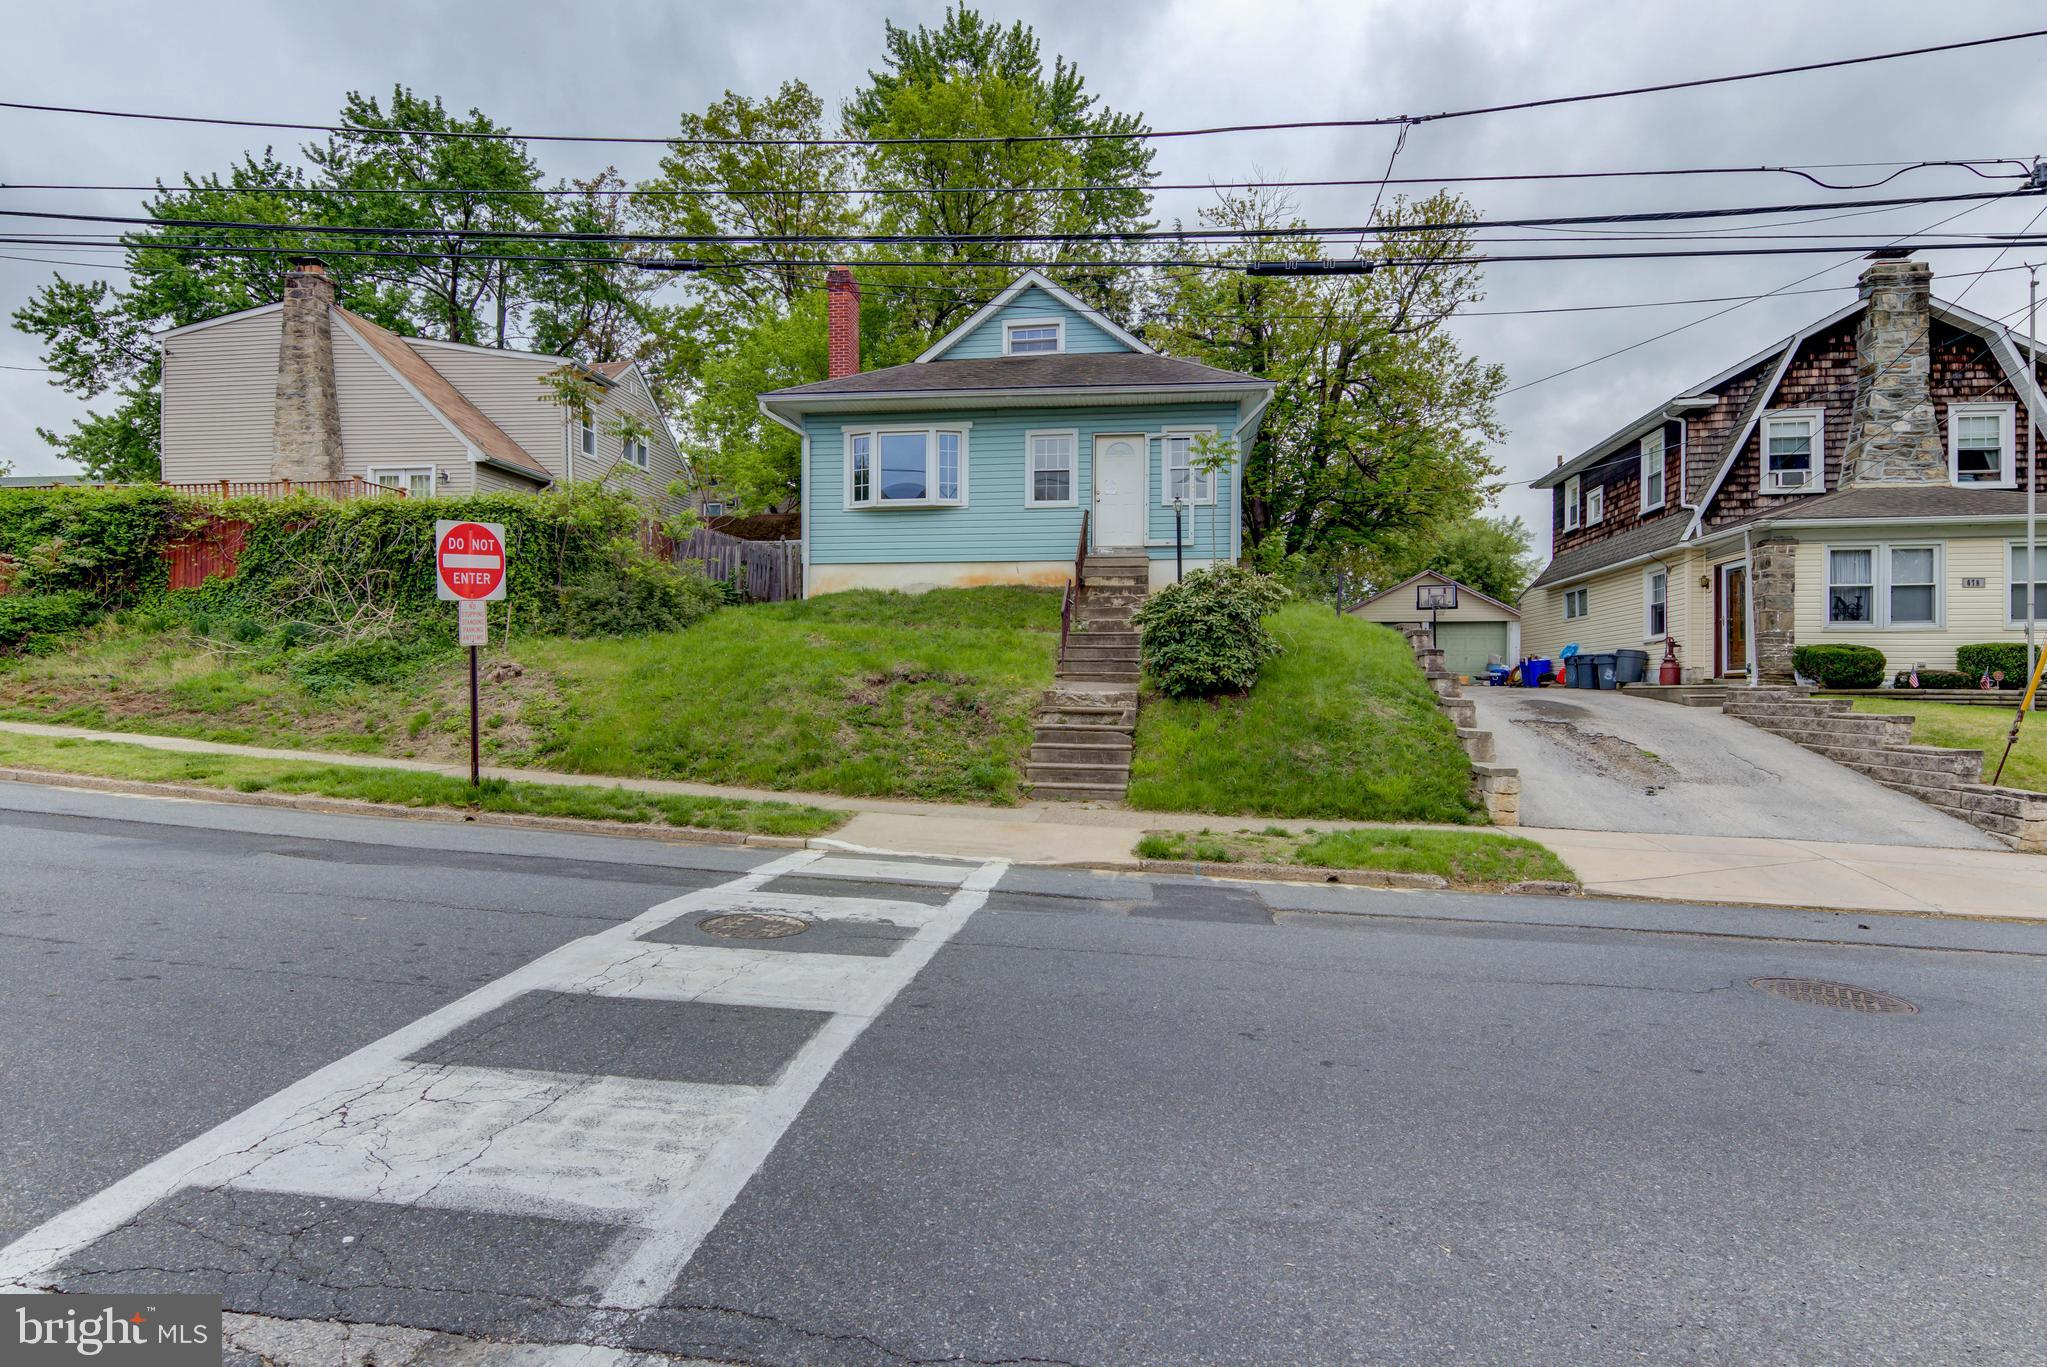 Prospect Park Pa >> 674 9 Th Avenue Prospect Park Pa 19076 Sold Listing Mls Pade490100 Crossroads Realty